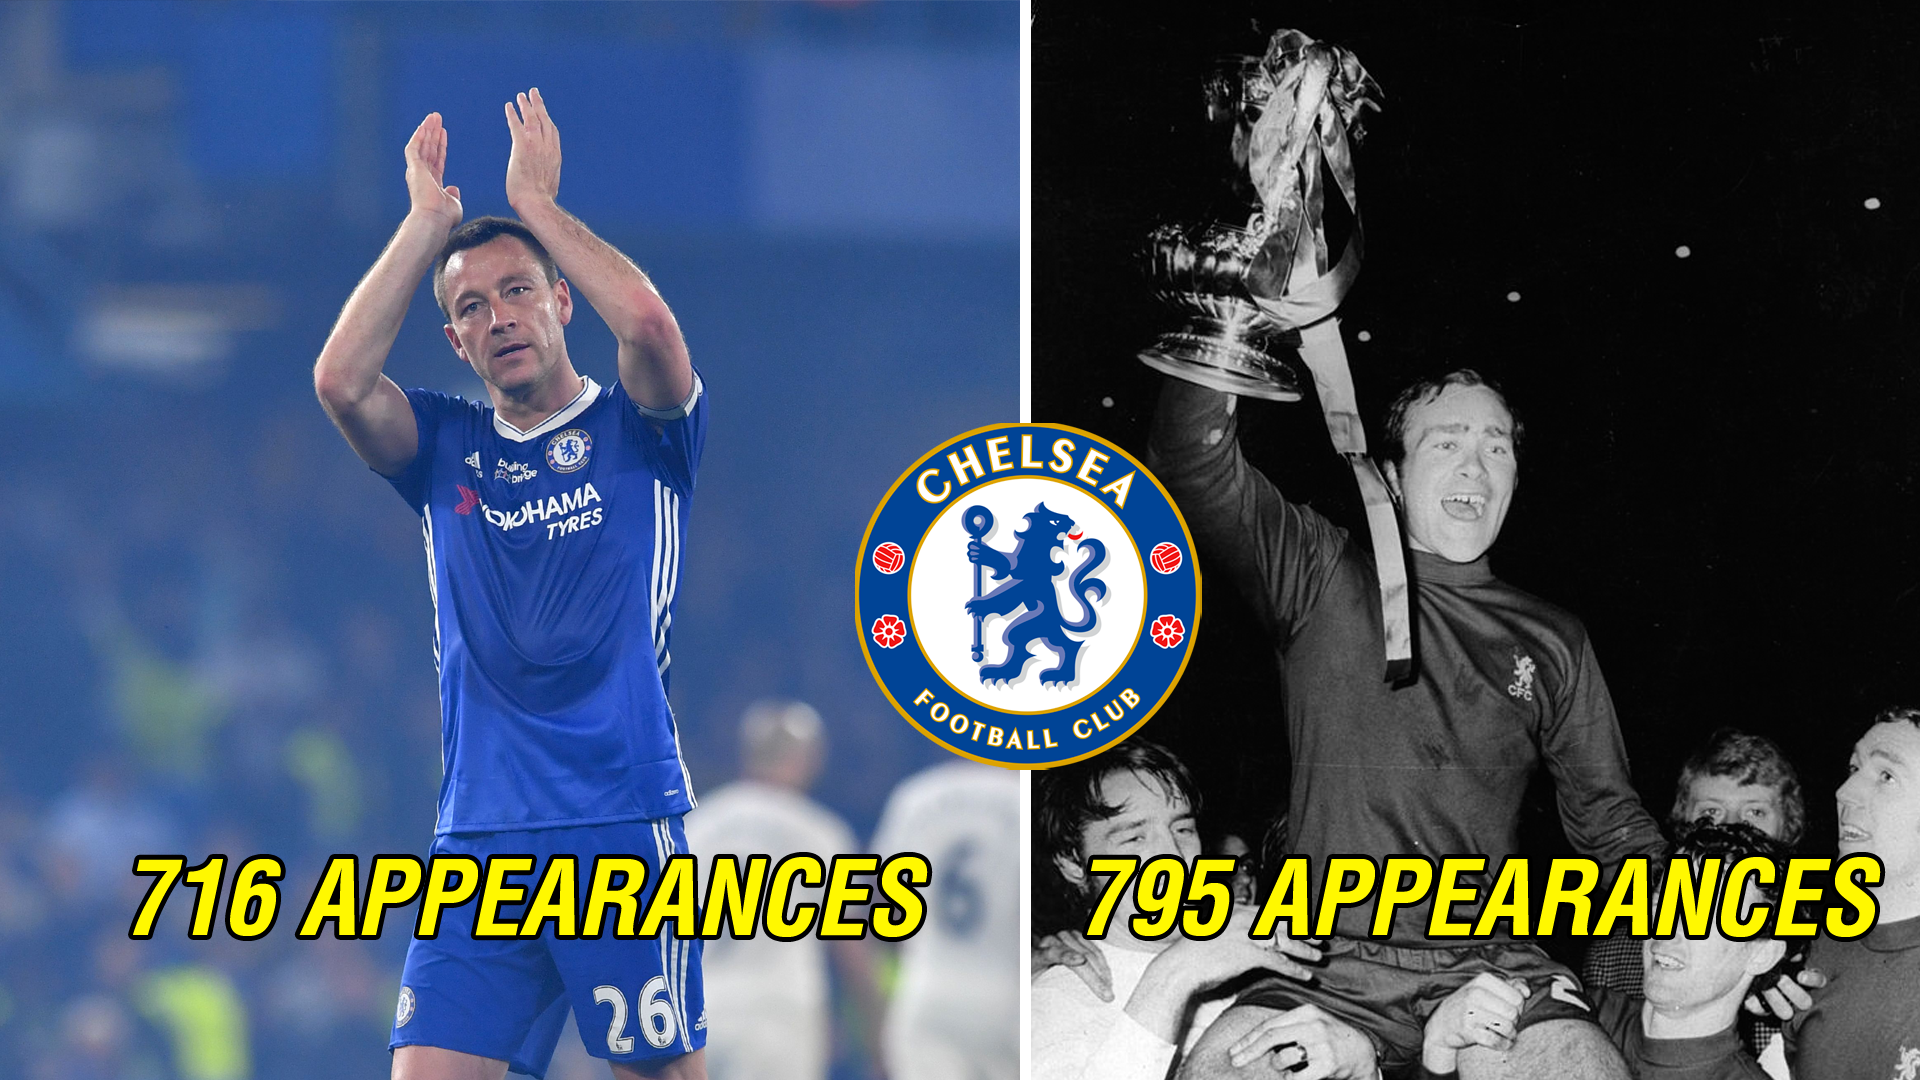 John Terry Ron Chopper Harris